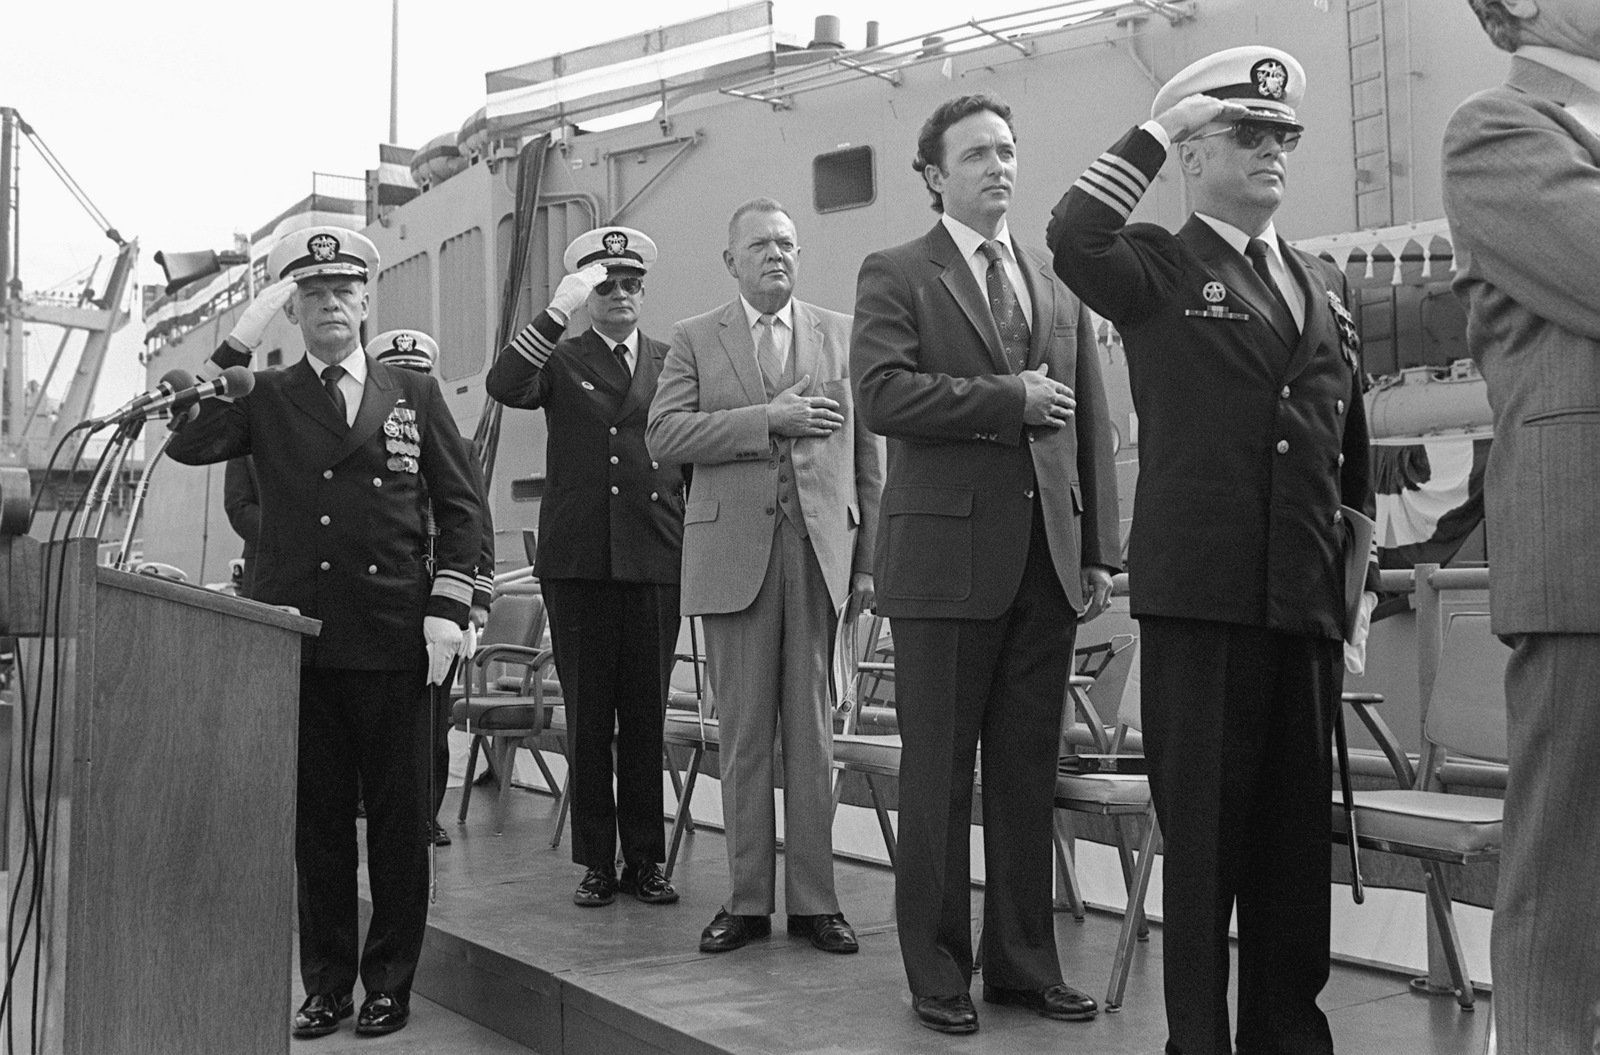 Guests on the speakers platform pay honor to the flag during the commissioning of the guided missile frigate USS JOHN A. MOORE (FFG 19). The guests are: Rear Admiral P. T. Gillcrist (at the podium), commander, Naval Base, San Diego; (left to right) Captain D. Kalb, Supervisor of Shipbuilding, Conversion and Repair; L. Thorell, vice president and general manager, Todd Pacific Shipyards; Congressman Dan Lungren (R-California), and Captain E. Russell, commander, Destroyer Squadron Nine